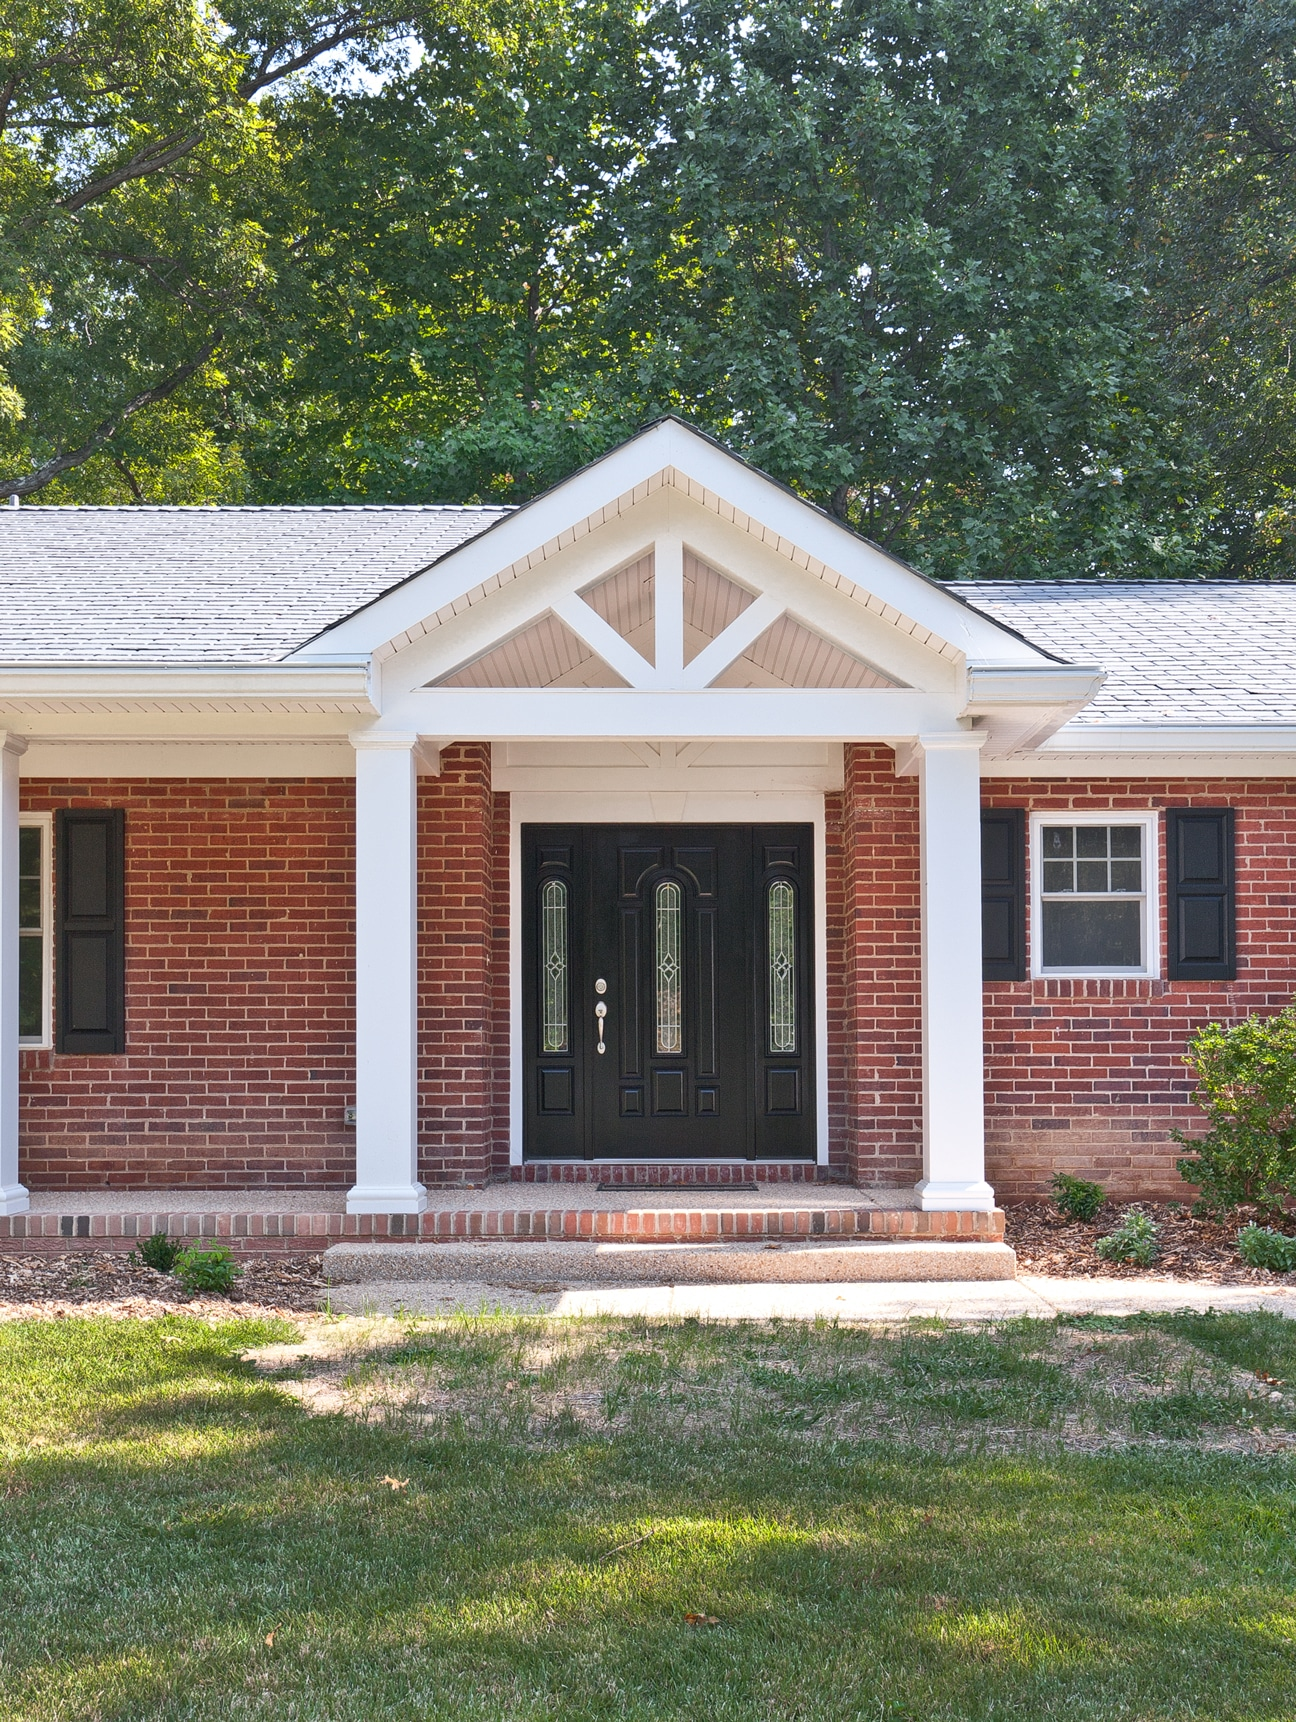 3rd Floor Addition Home Design Ideas Renovations Photos: Making An Entrance With Home Additions